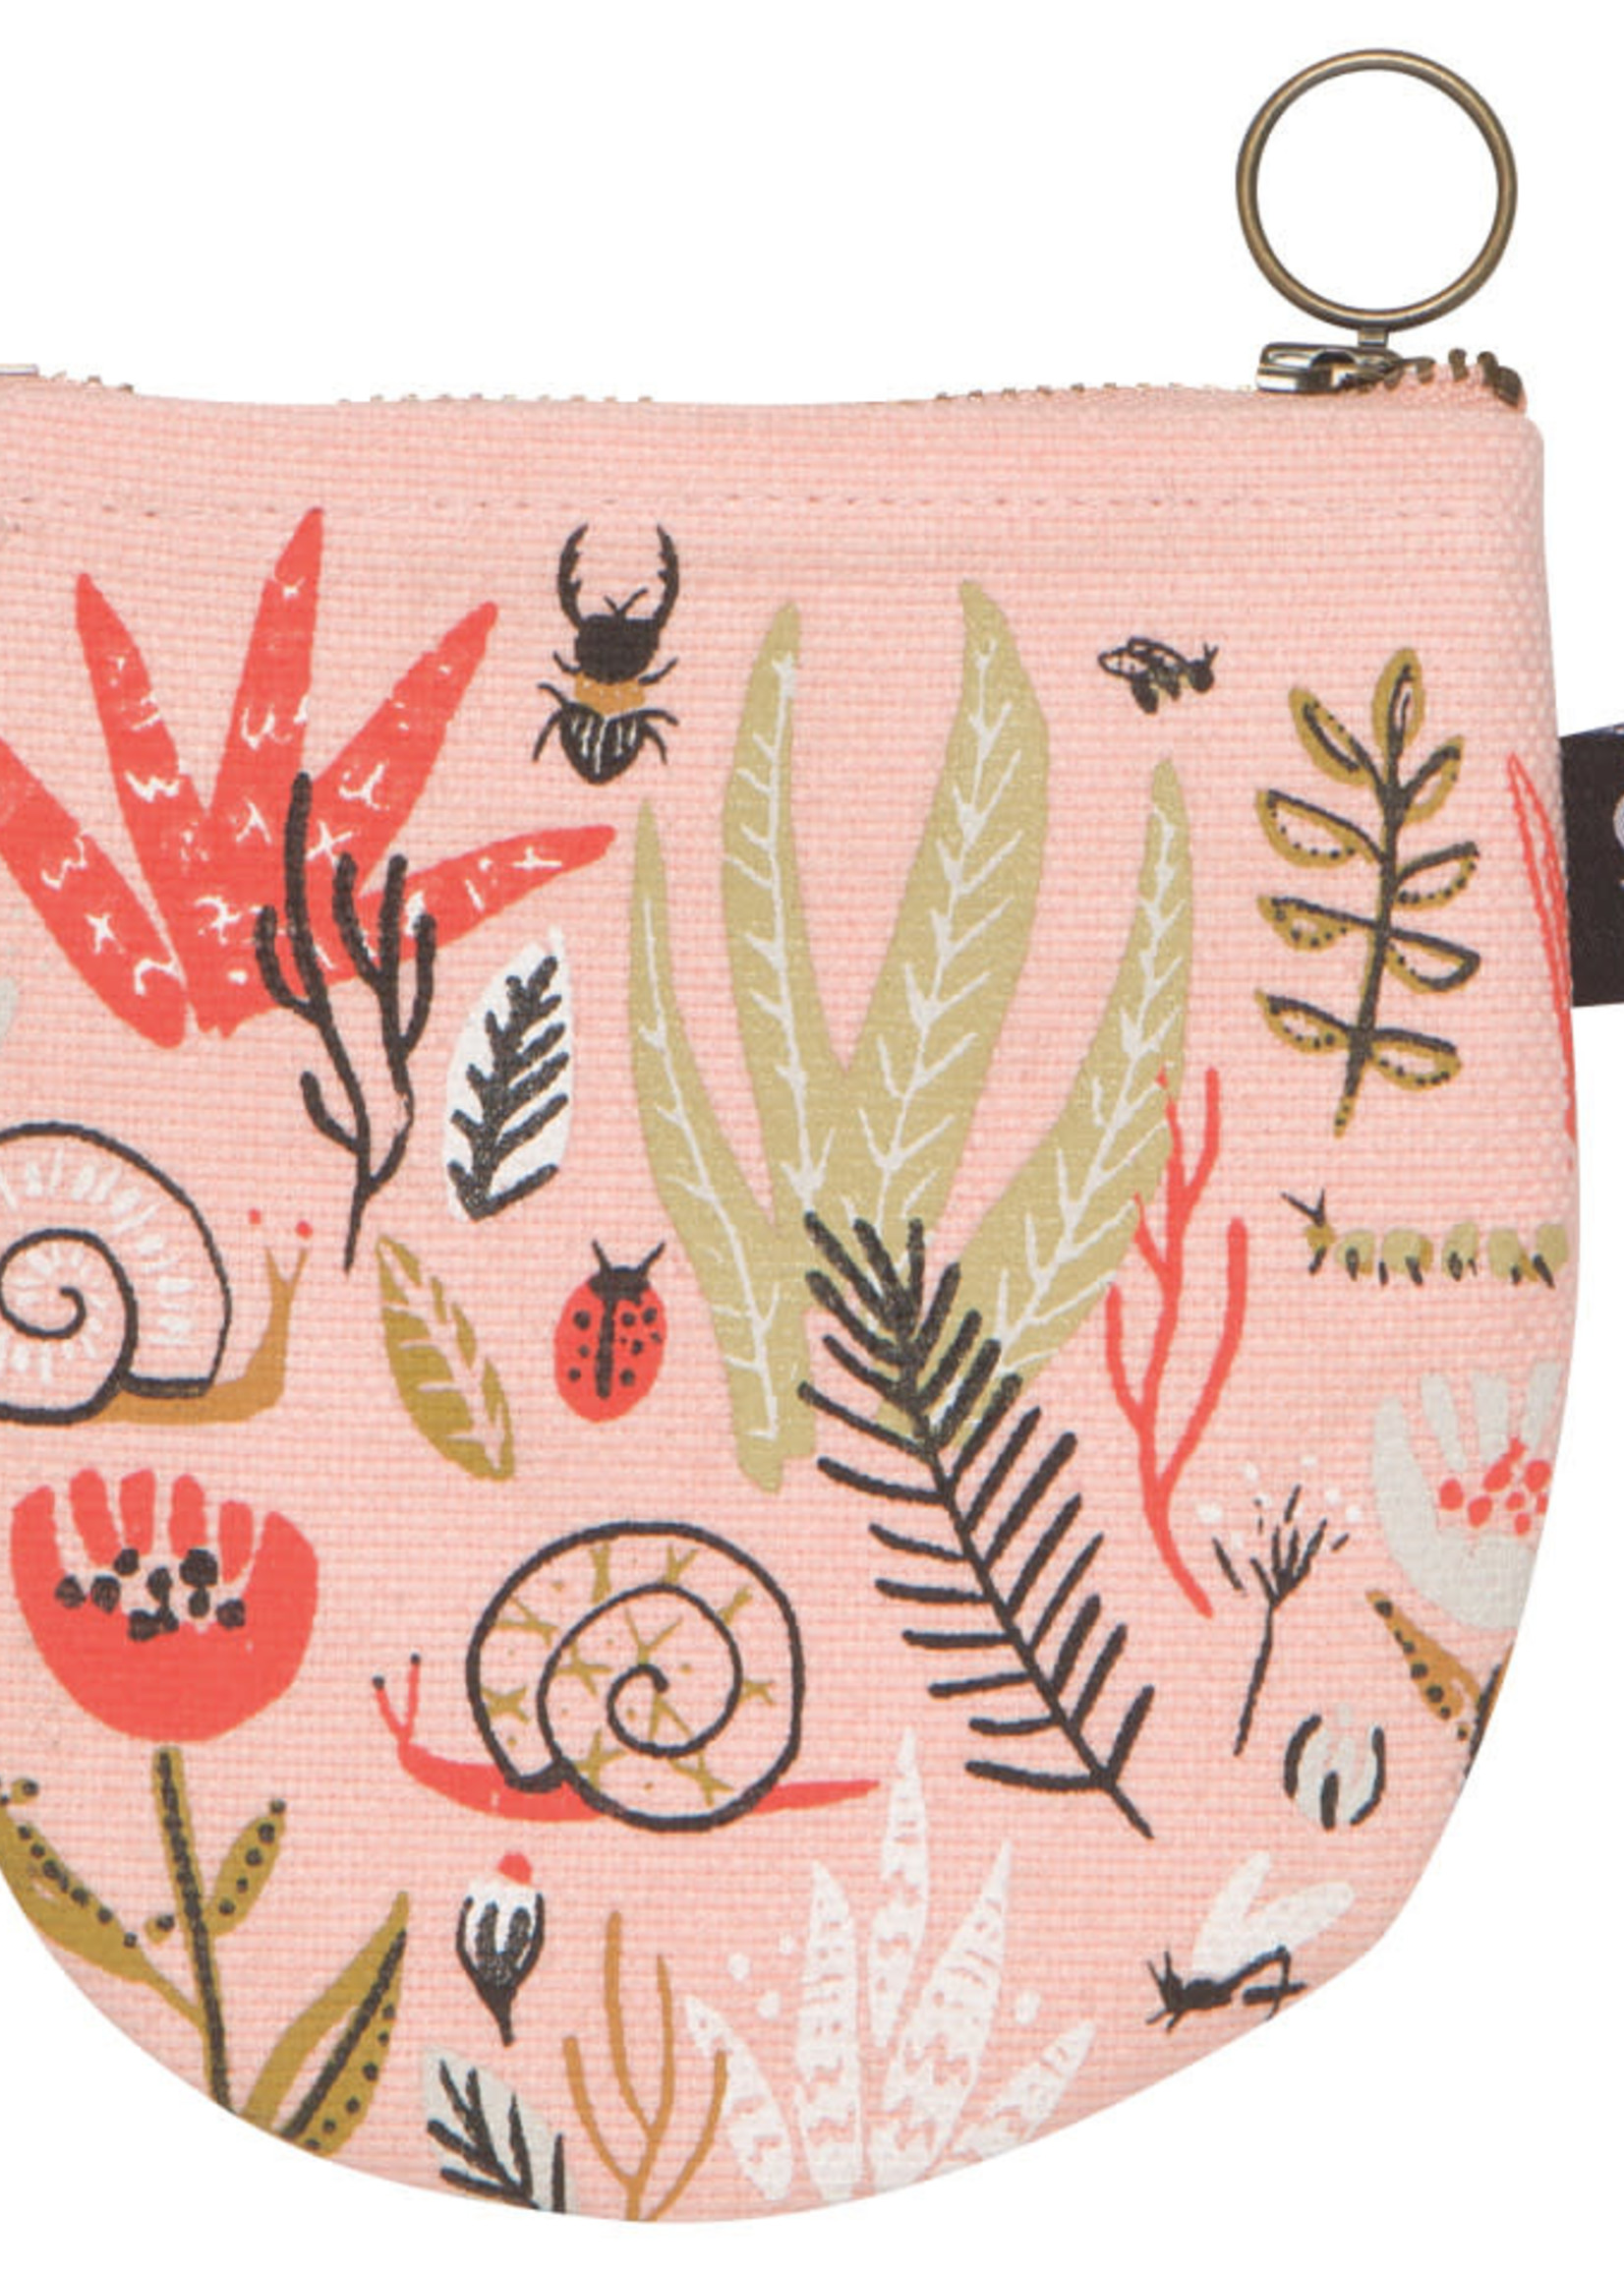 NOW DESIGNS NOW DESIGNS HALFMOON POUCH - SMALL WORLD